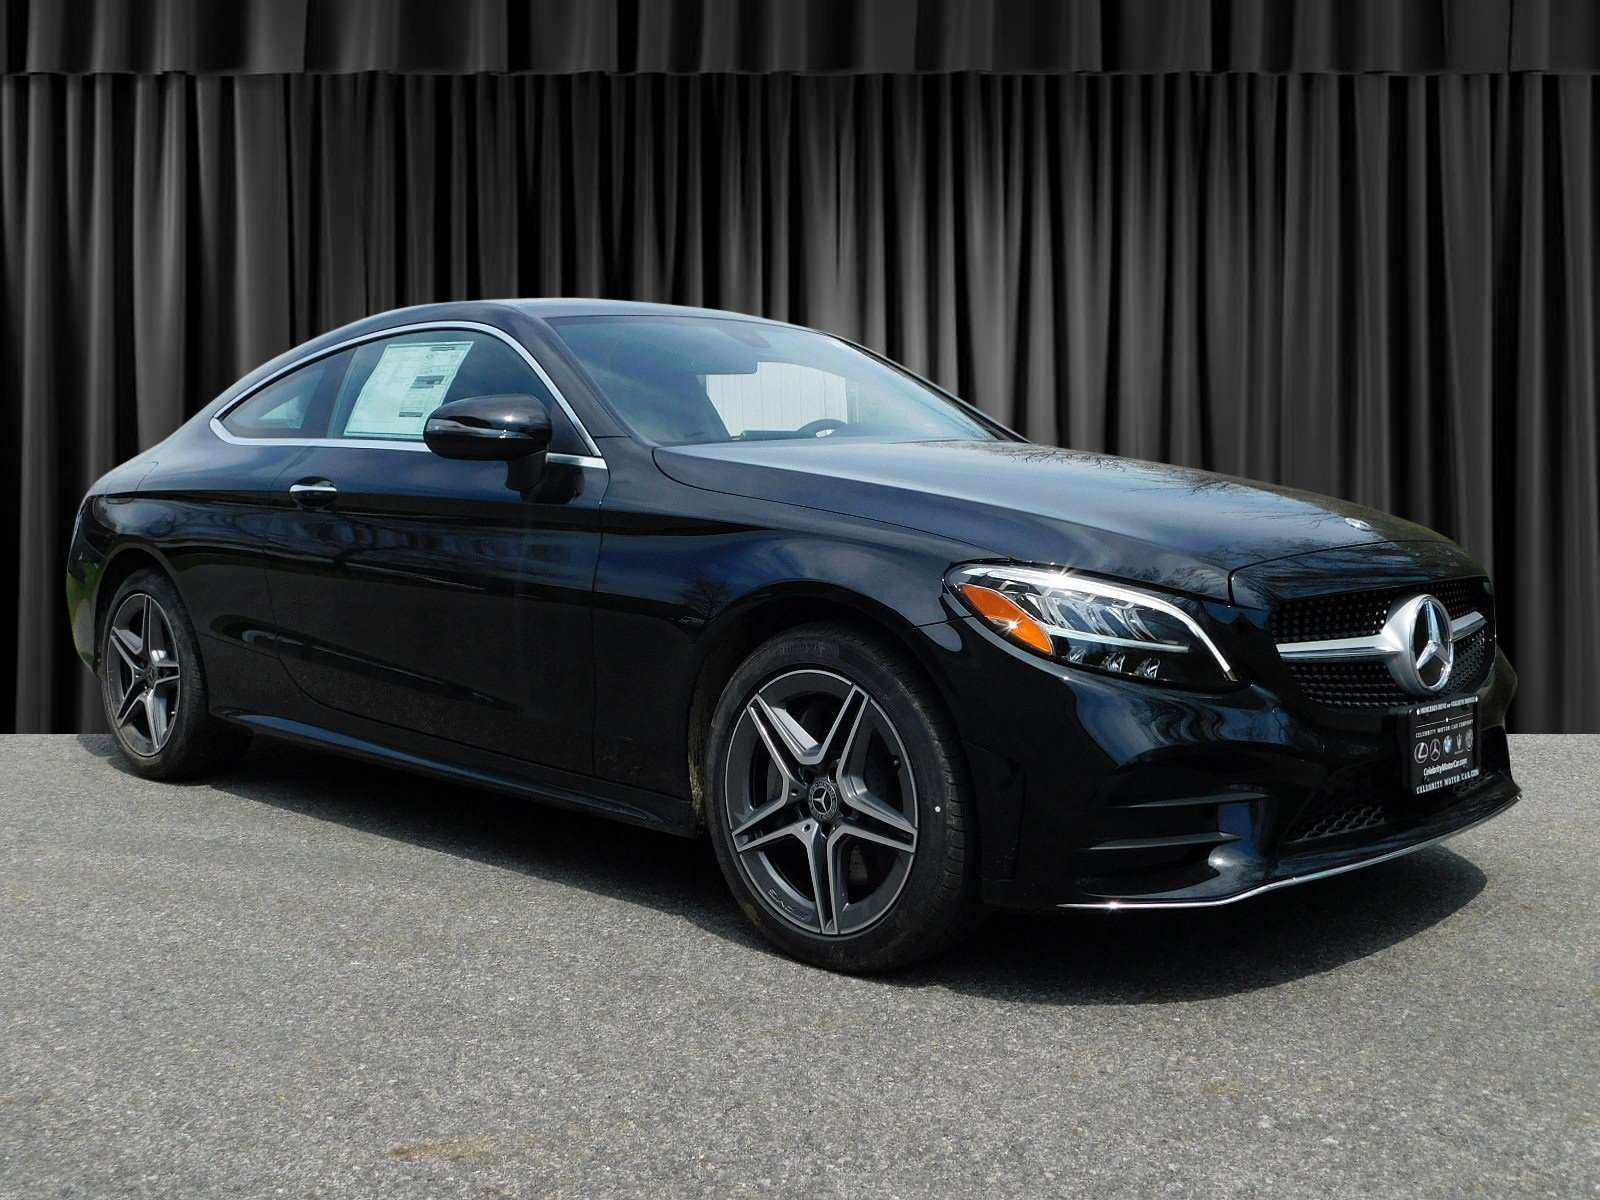 43 New 2019 Mercedes Benz C Class Speed Test